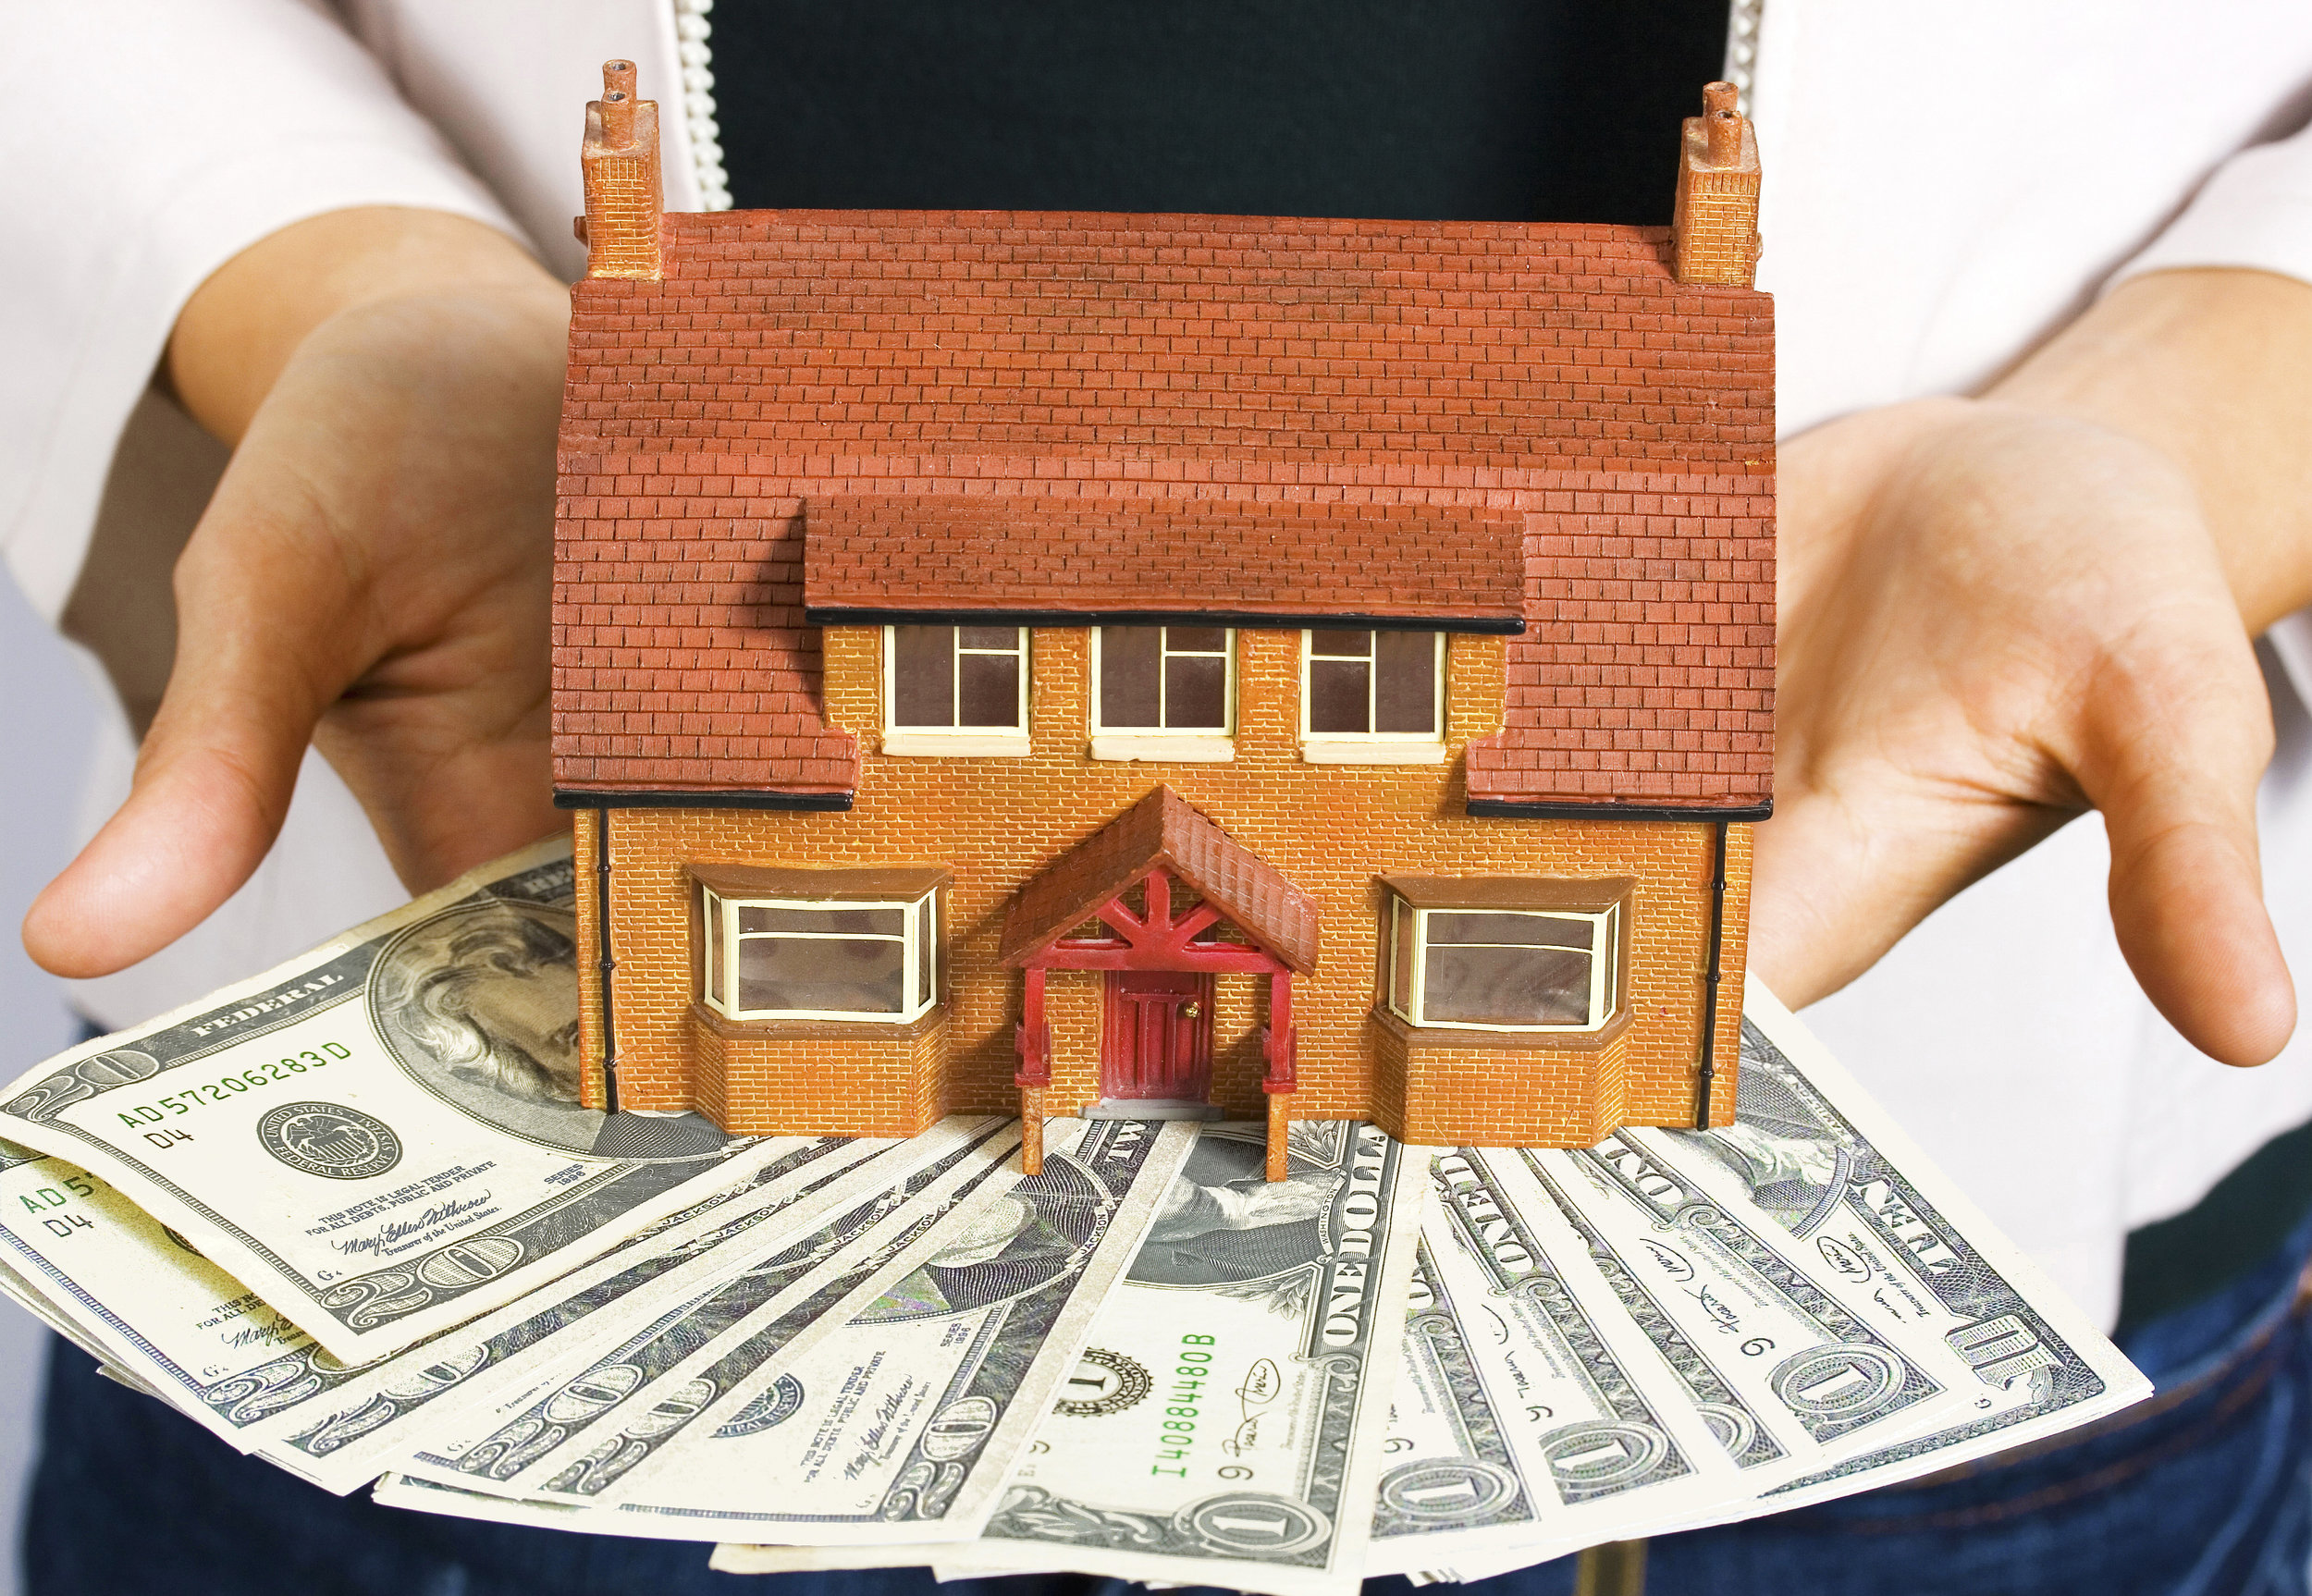 a-person-holding-a-miniature-house-and-some-dollar-bills_f17FkBDO.jpg